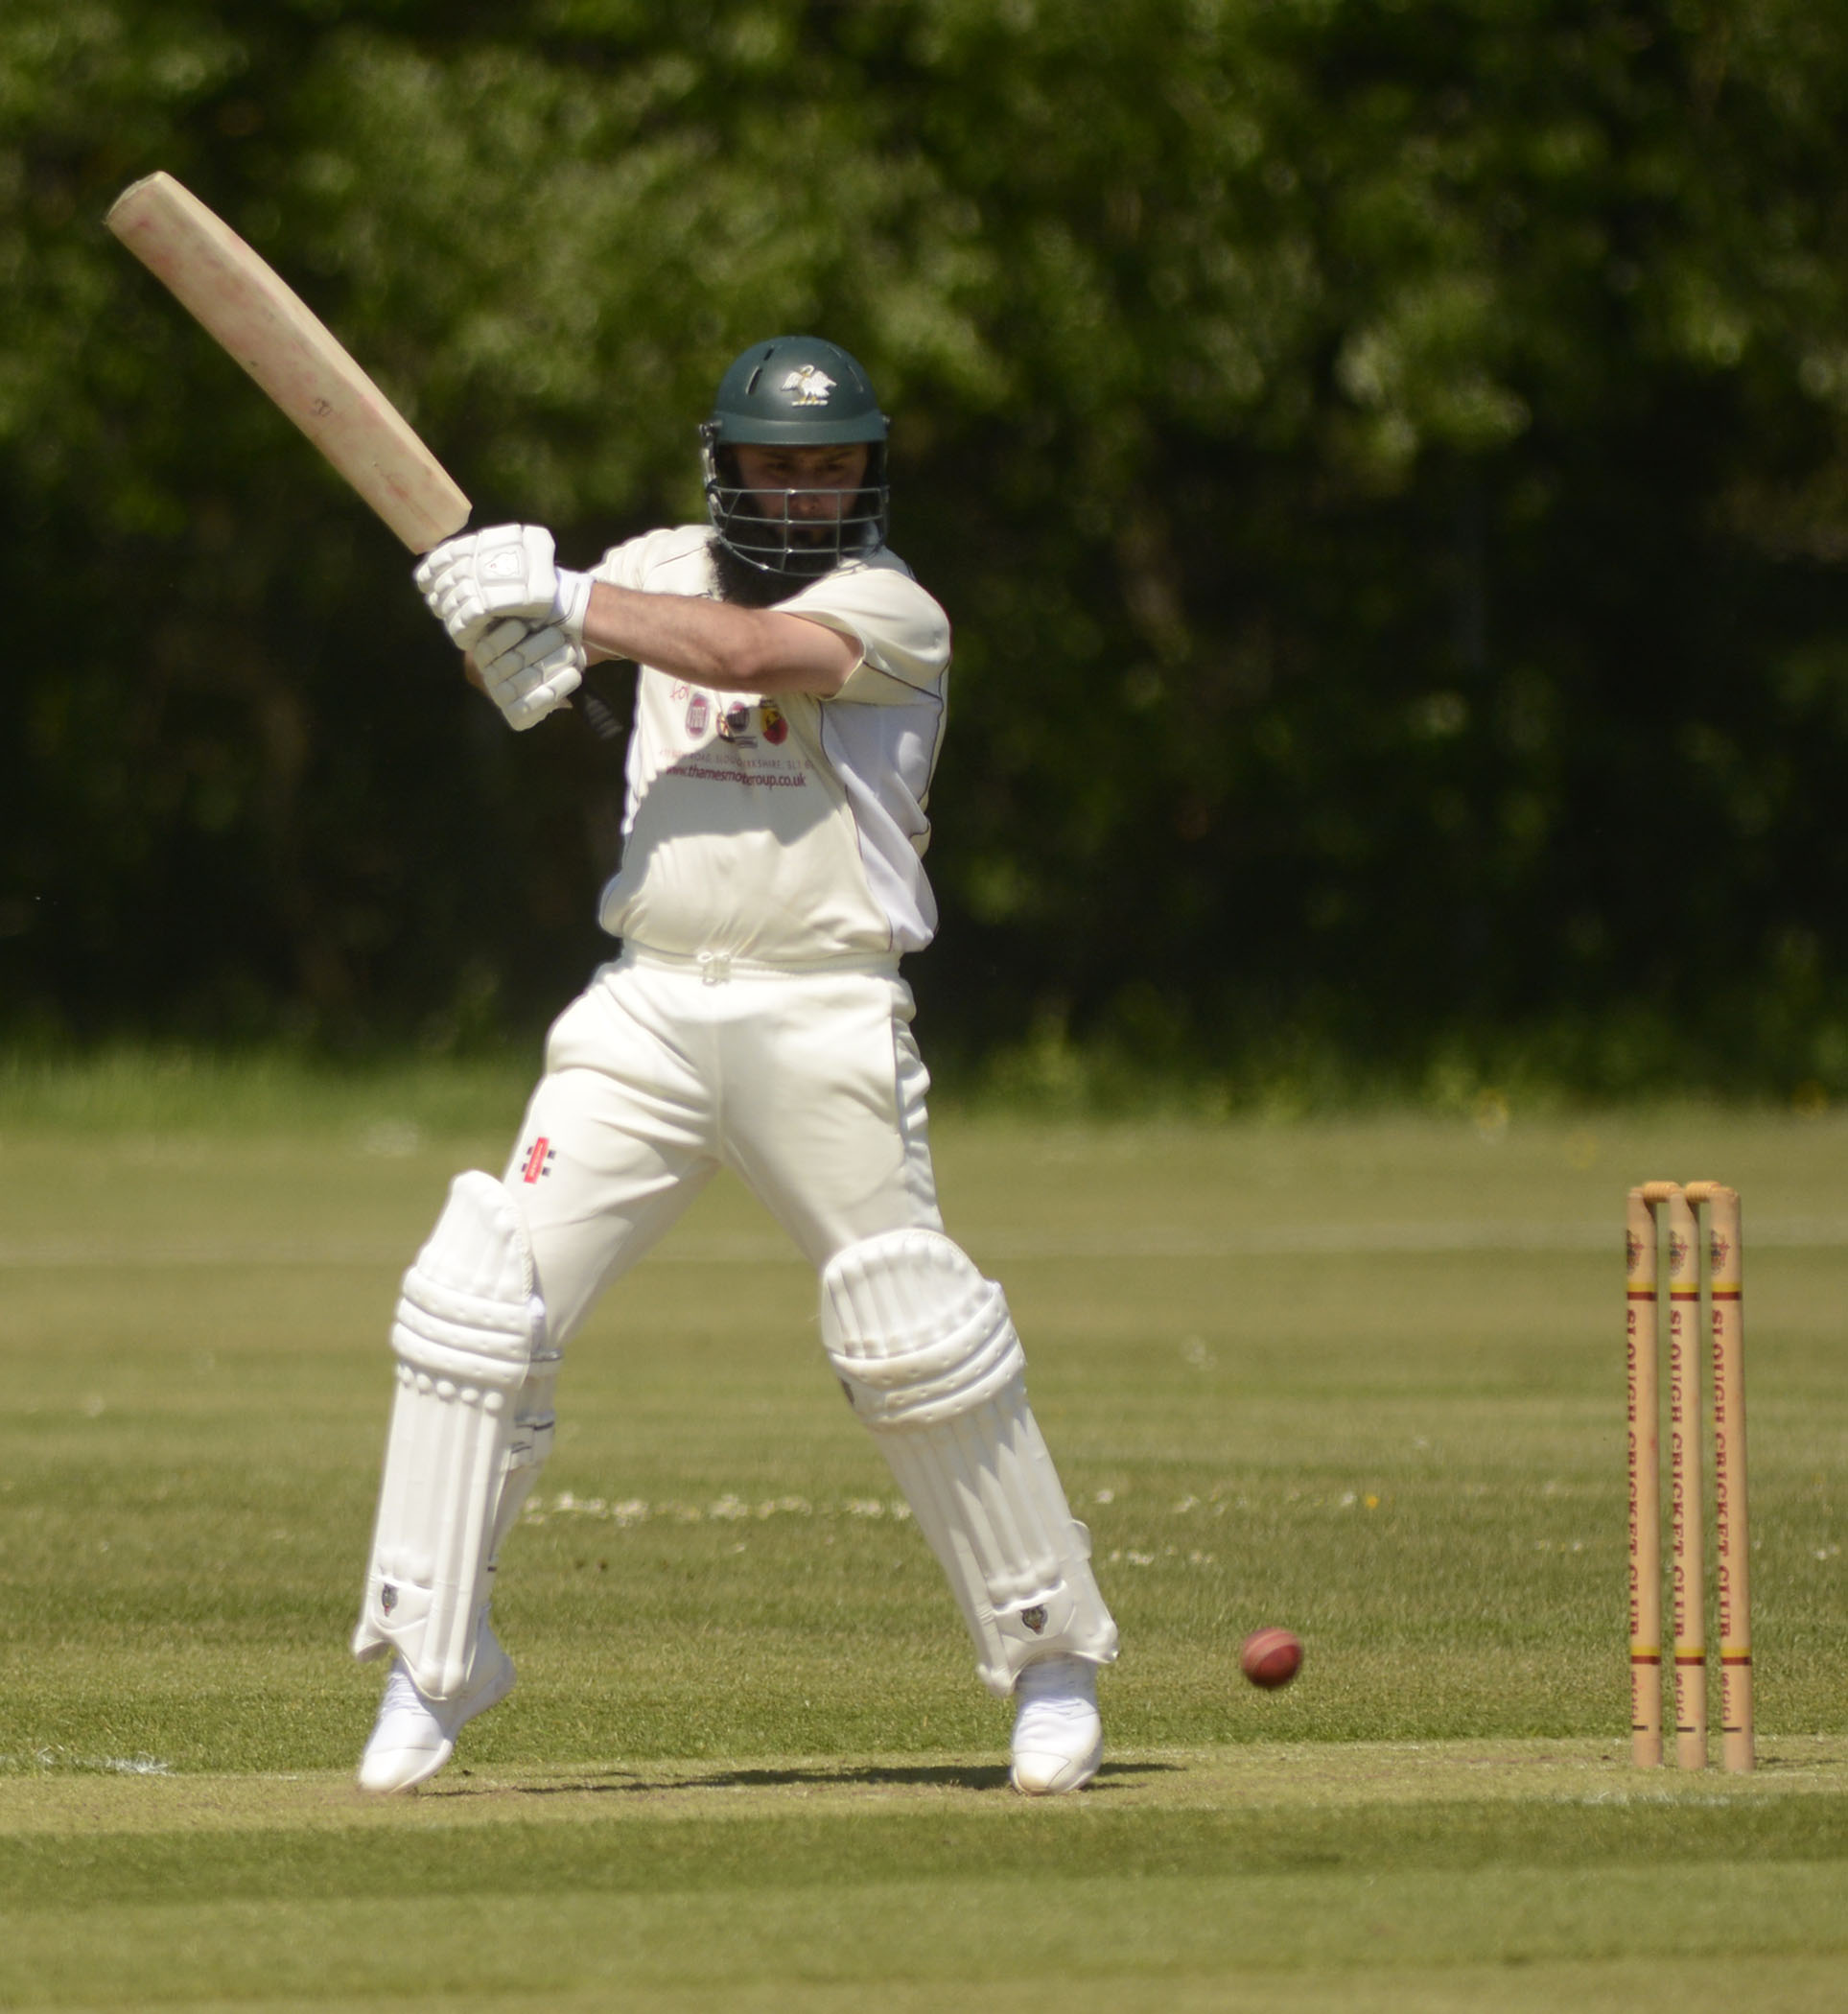 Fahim Qureshi top-scored with 91 runs as Slough beat Horspath.